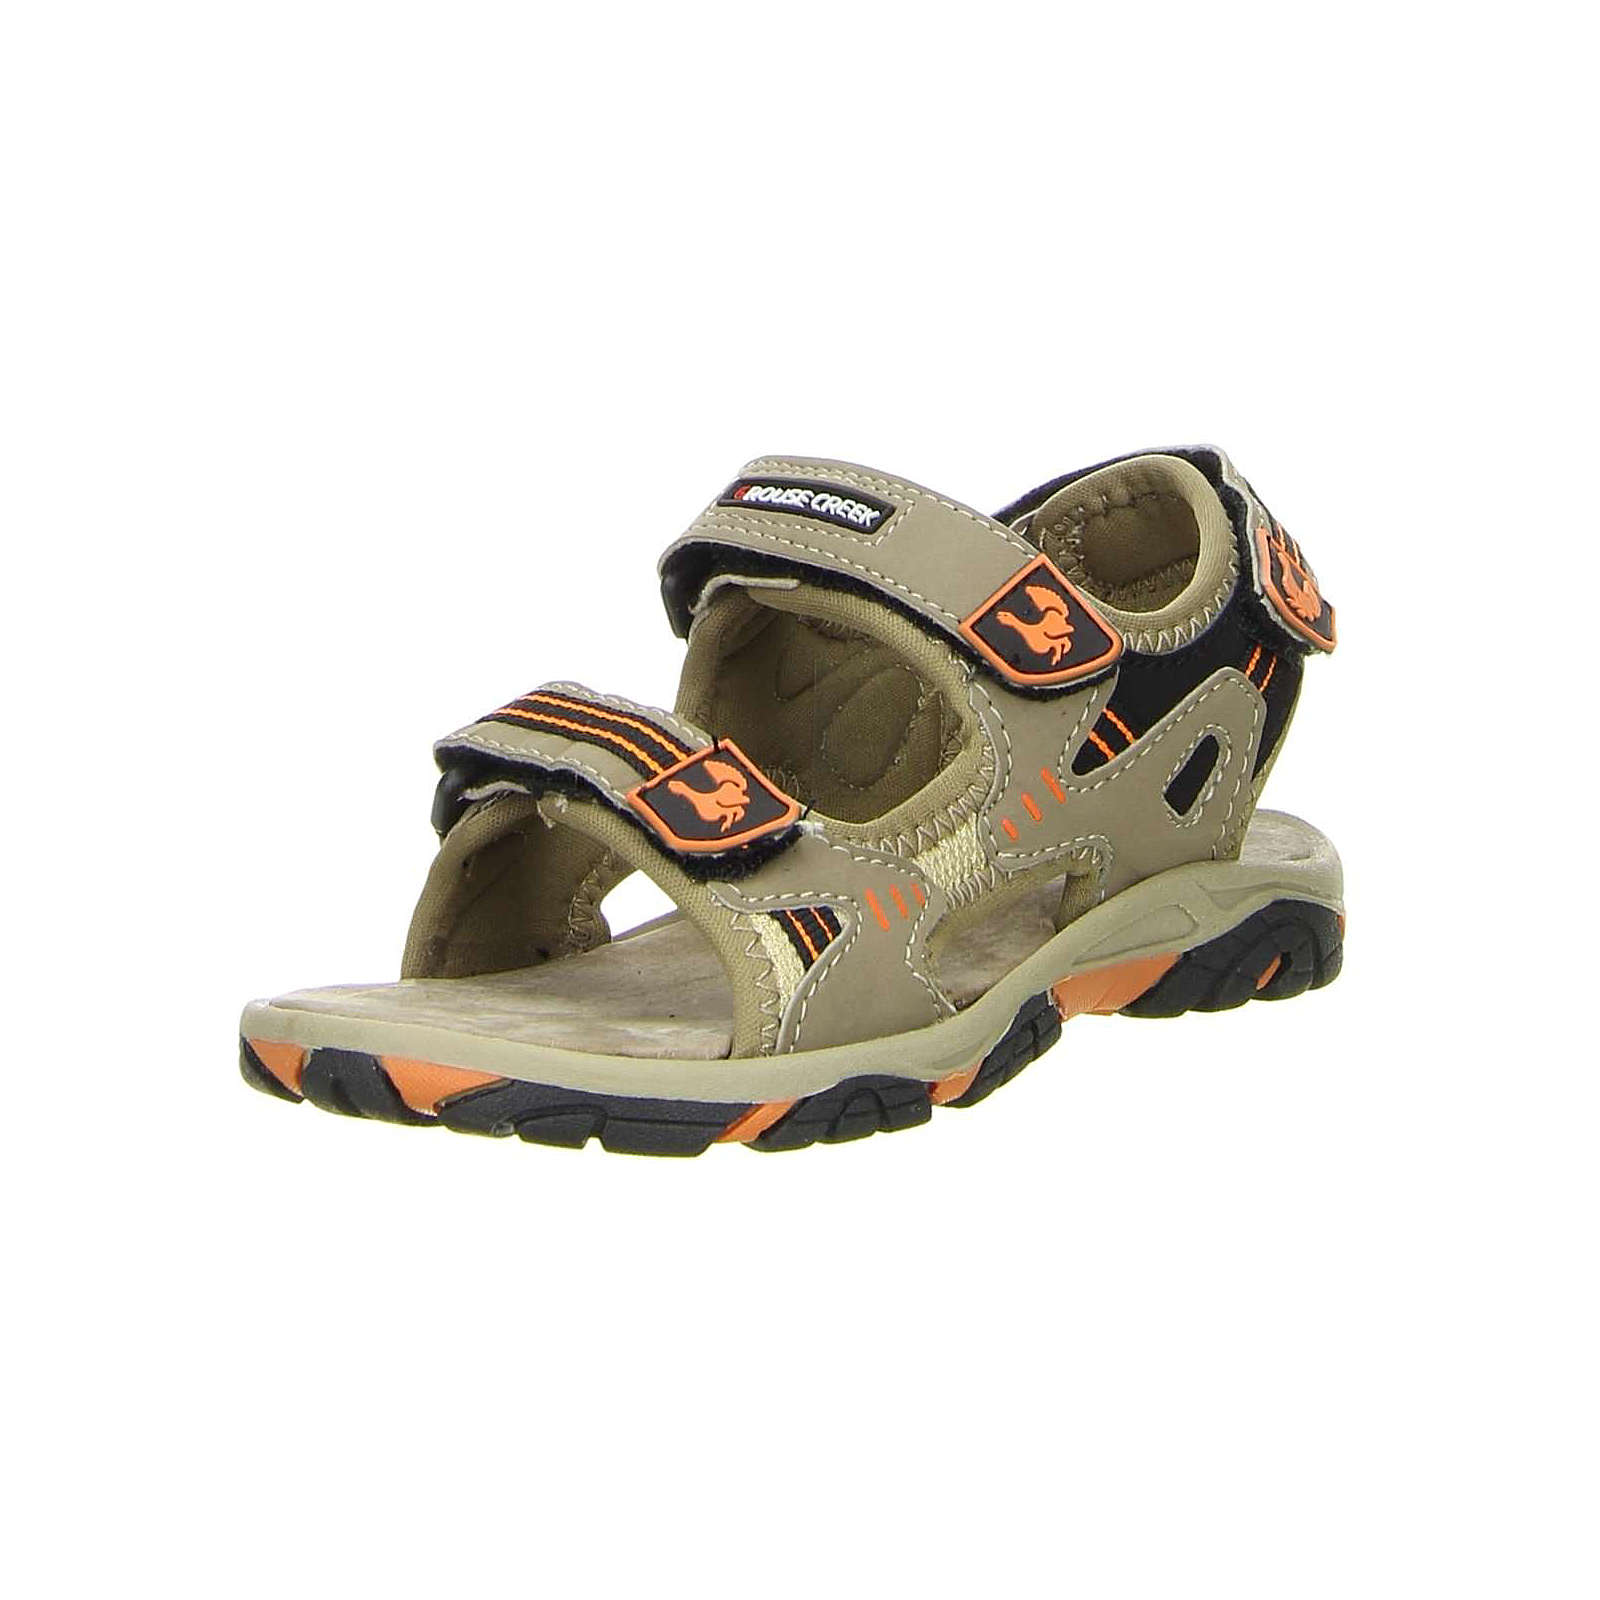 GROUSE CREEK Kinder Outdoorschuhe braun Gr. 32